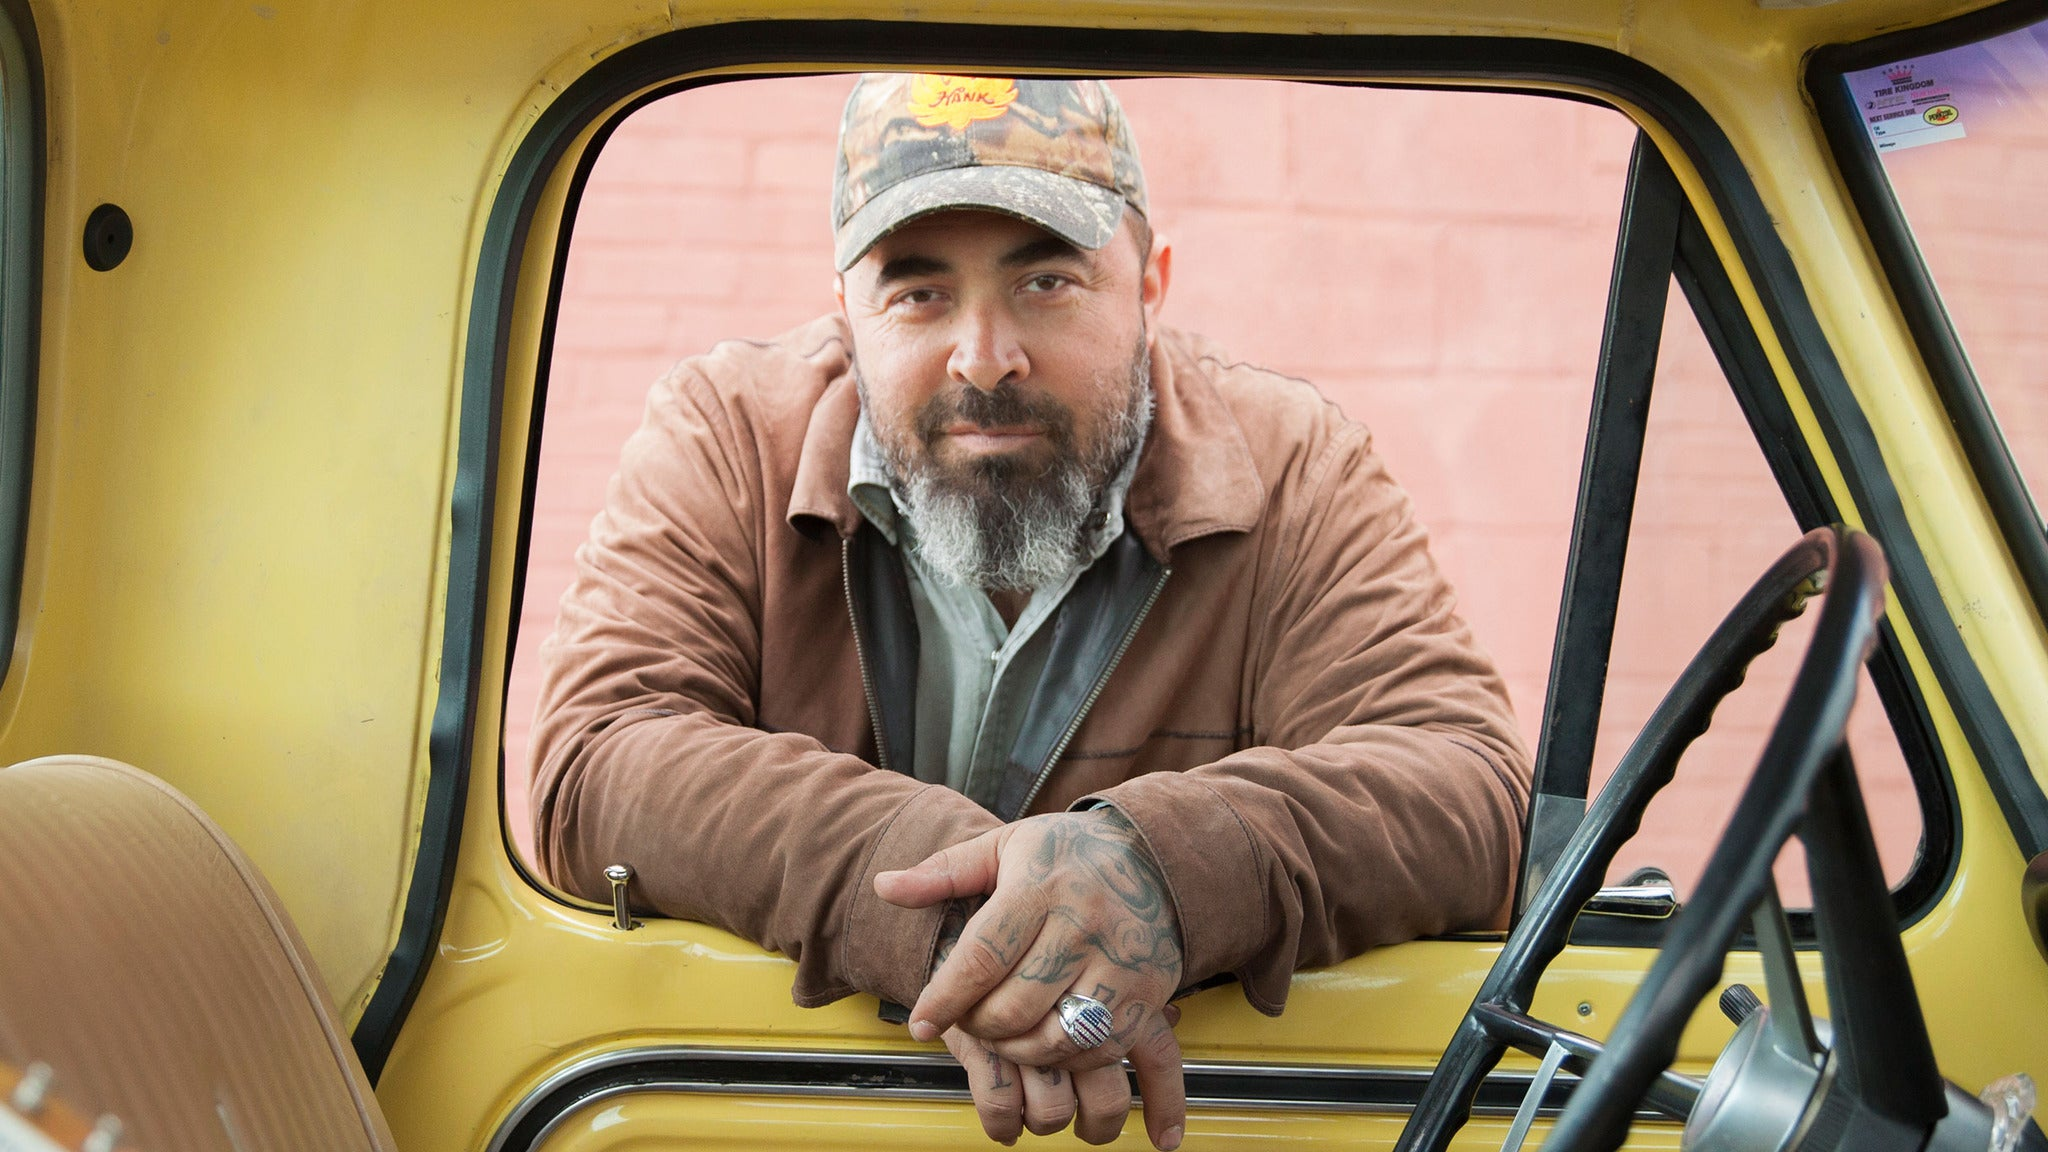 Aaron Lewis at Harv Arena at Mountaineer - Chester, WV 26034